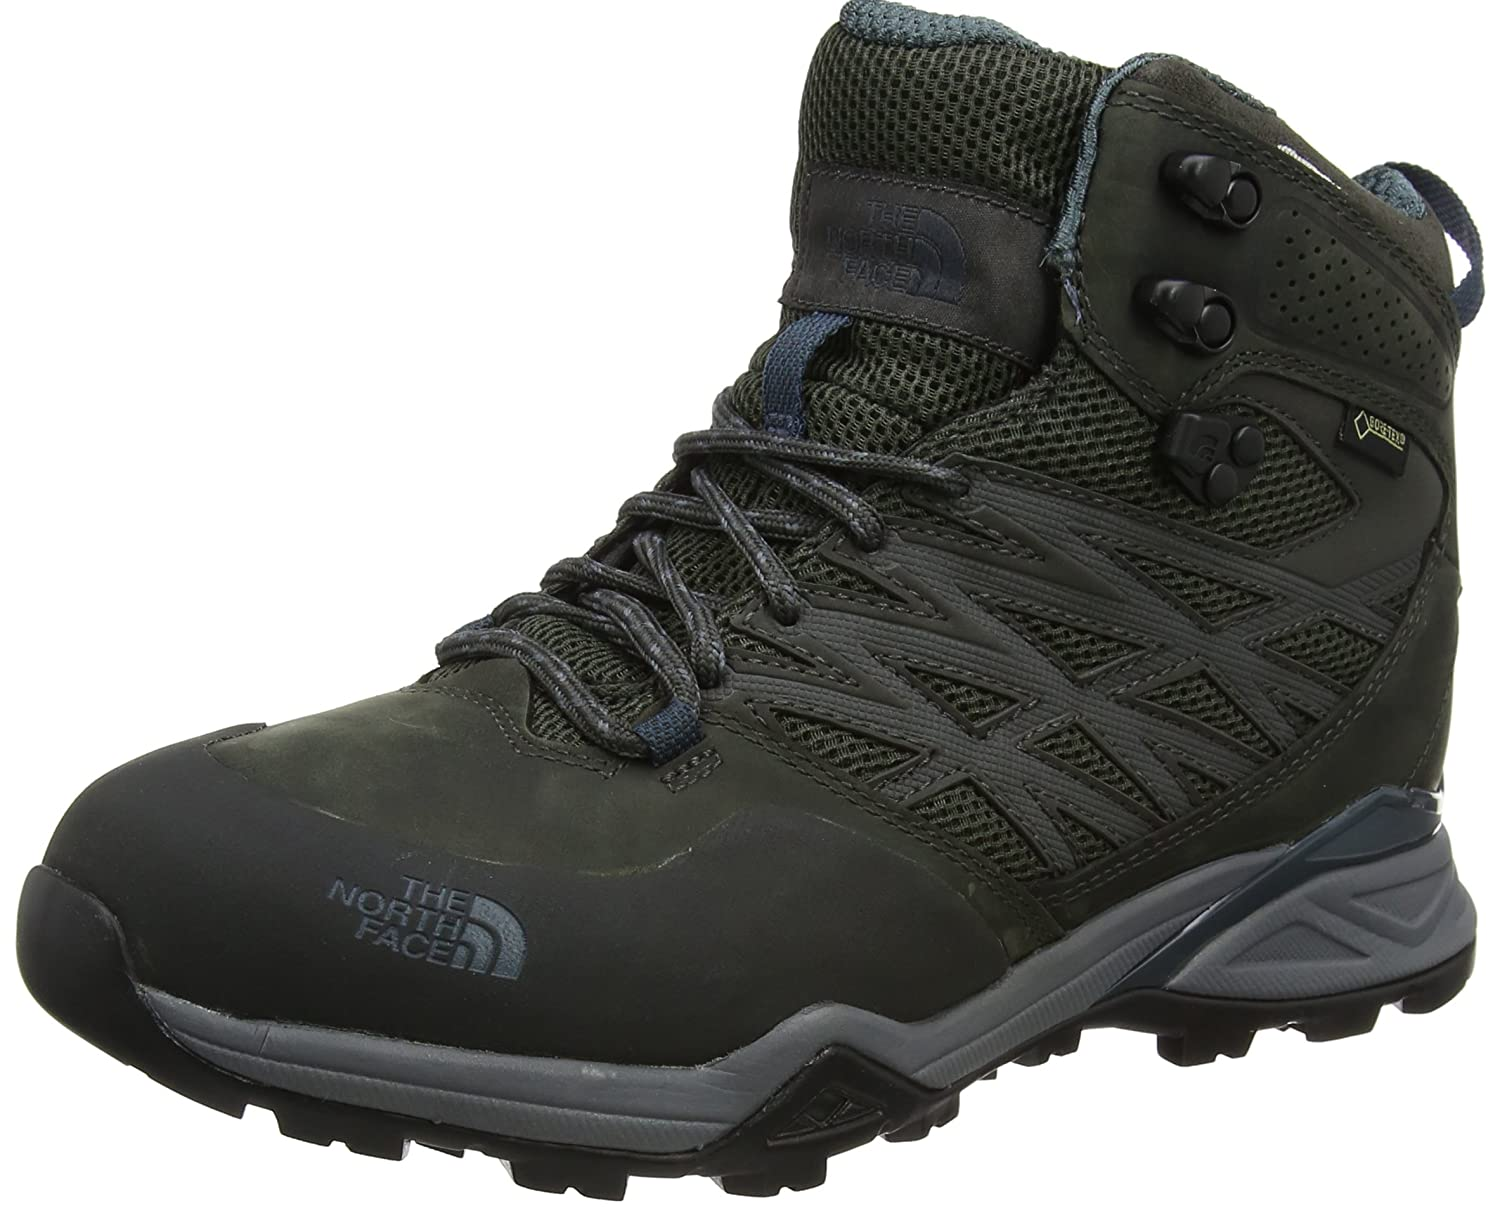 THE NORTH FACE Herren Hedgehog Hike Mid Gore-tex Trekking- & Wanderstiefel